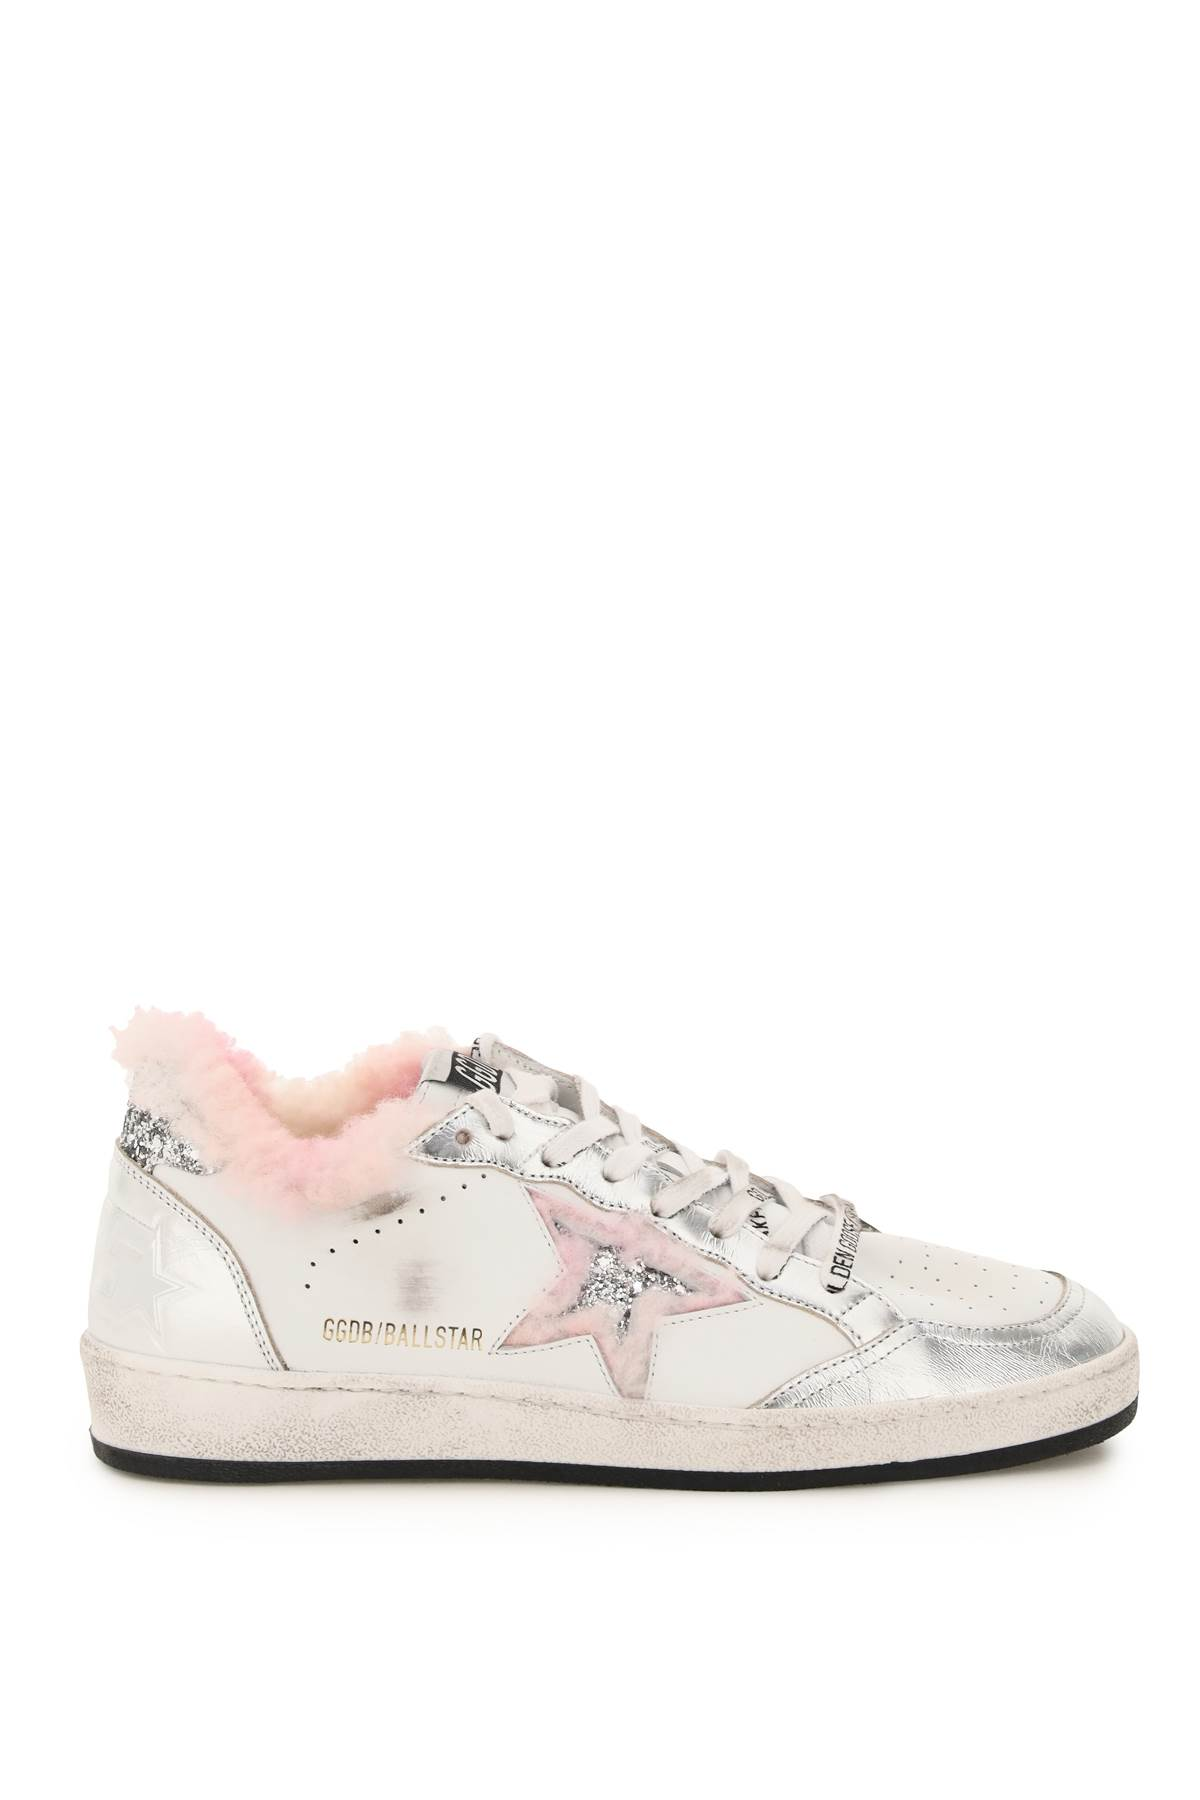 Golden Goose Ball Star Sneakers With Shearling